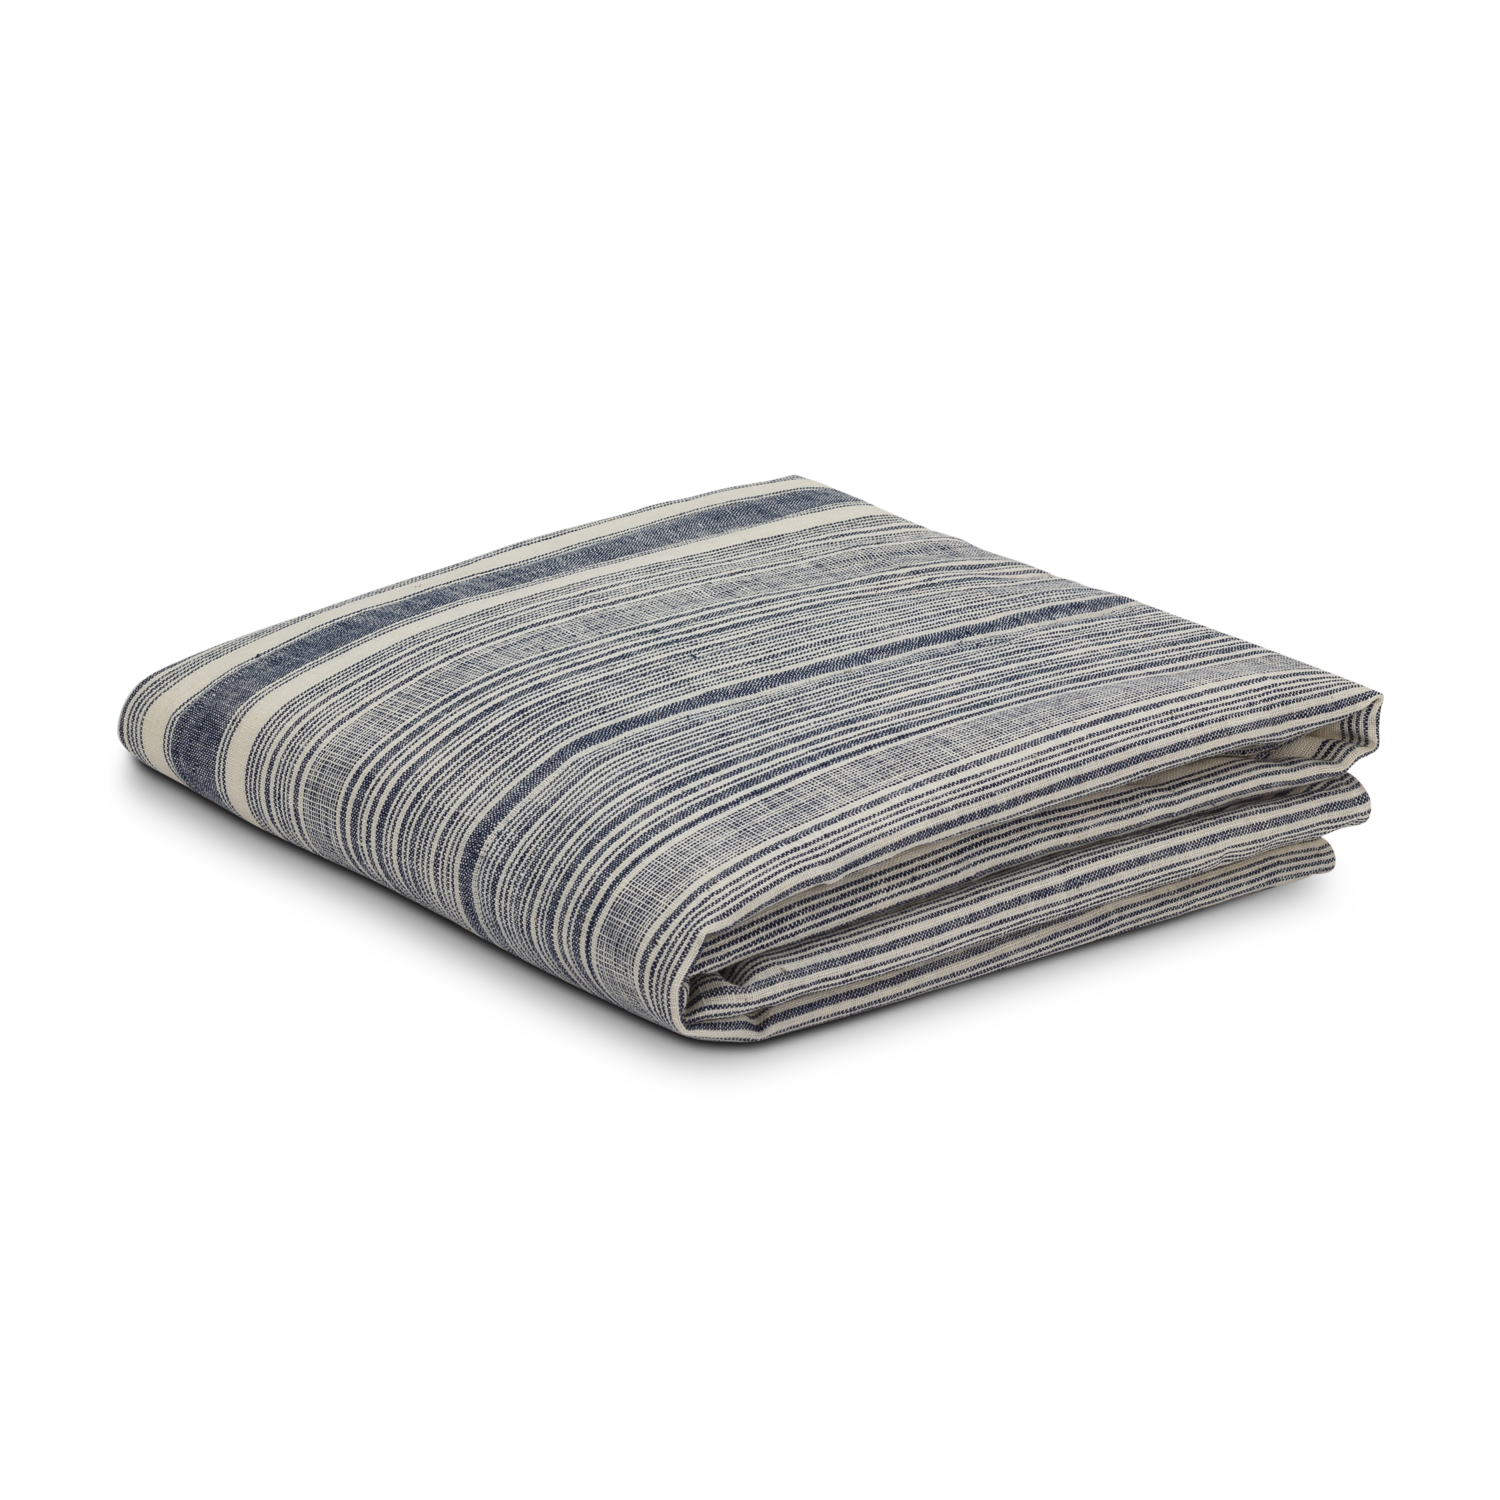 blanket product photography